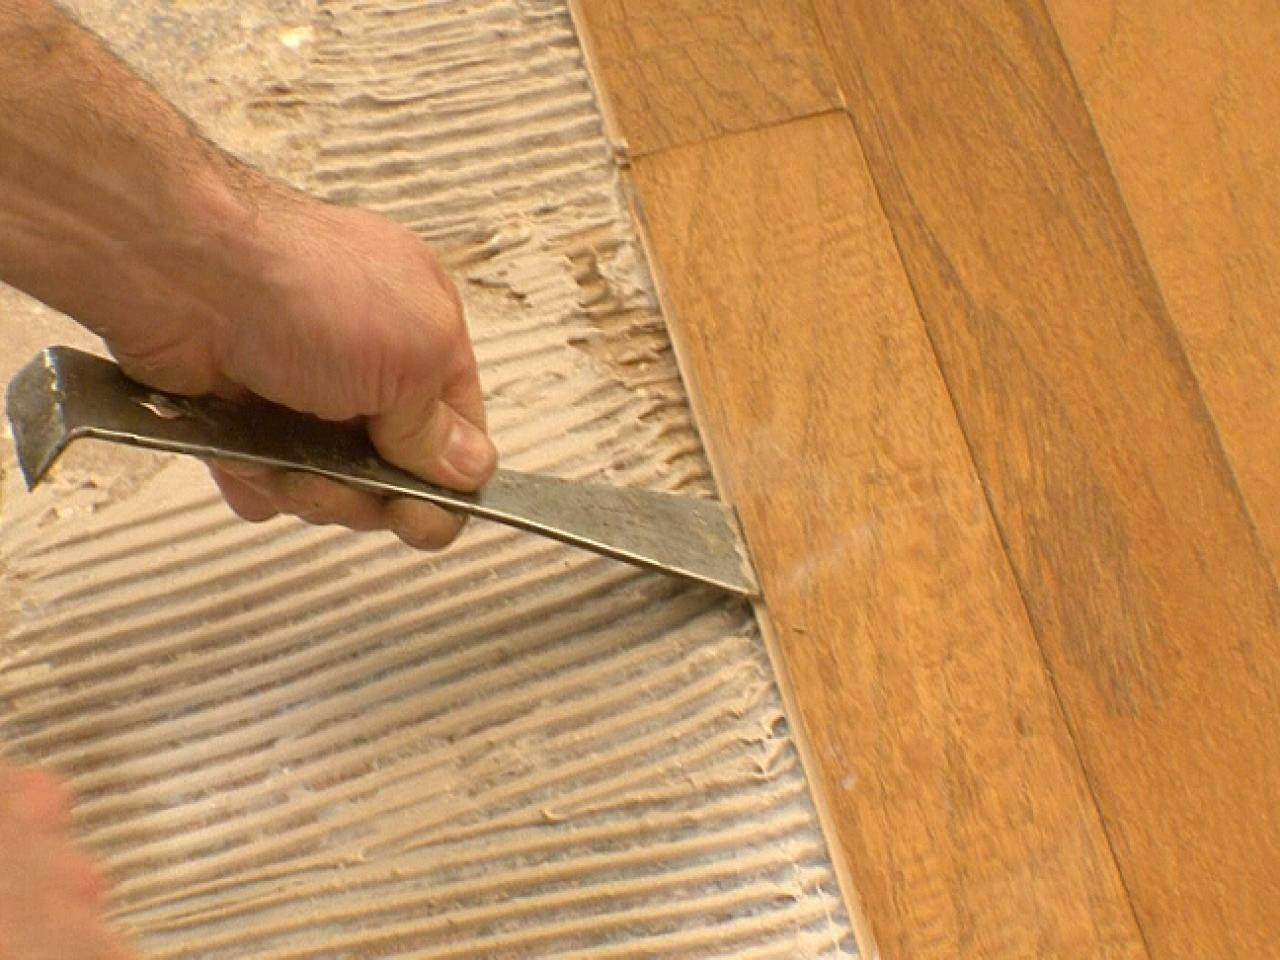 what does hardwood flooring cost installed of 17 new cost of hardwood floor installation pics dizpos com in cost of hardwood floor installation new average cost engineered wood flooring per square foot flooring stock